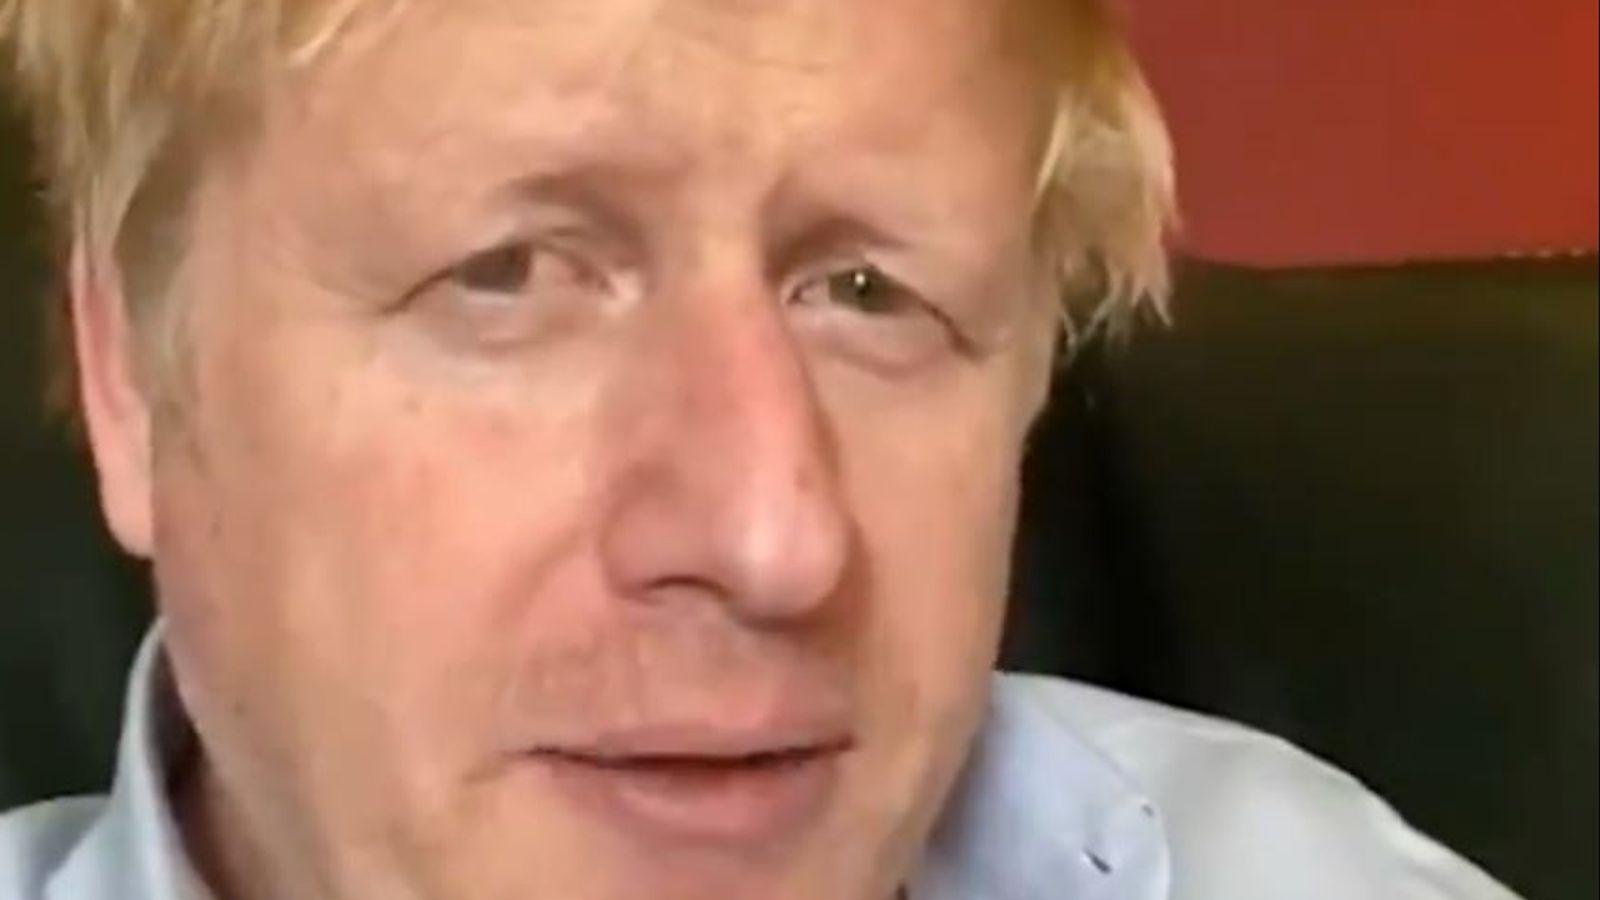 Coronavirus: What hospital tests will Boris Johnson have as he battles COVID-19? - Sky News